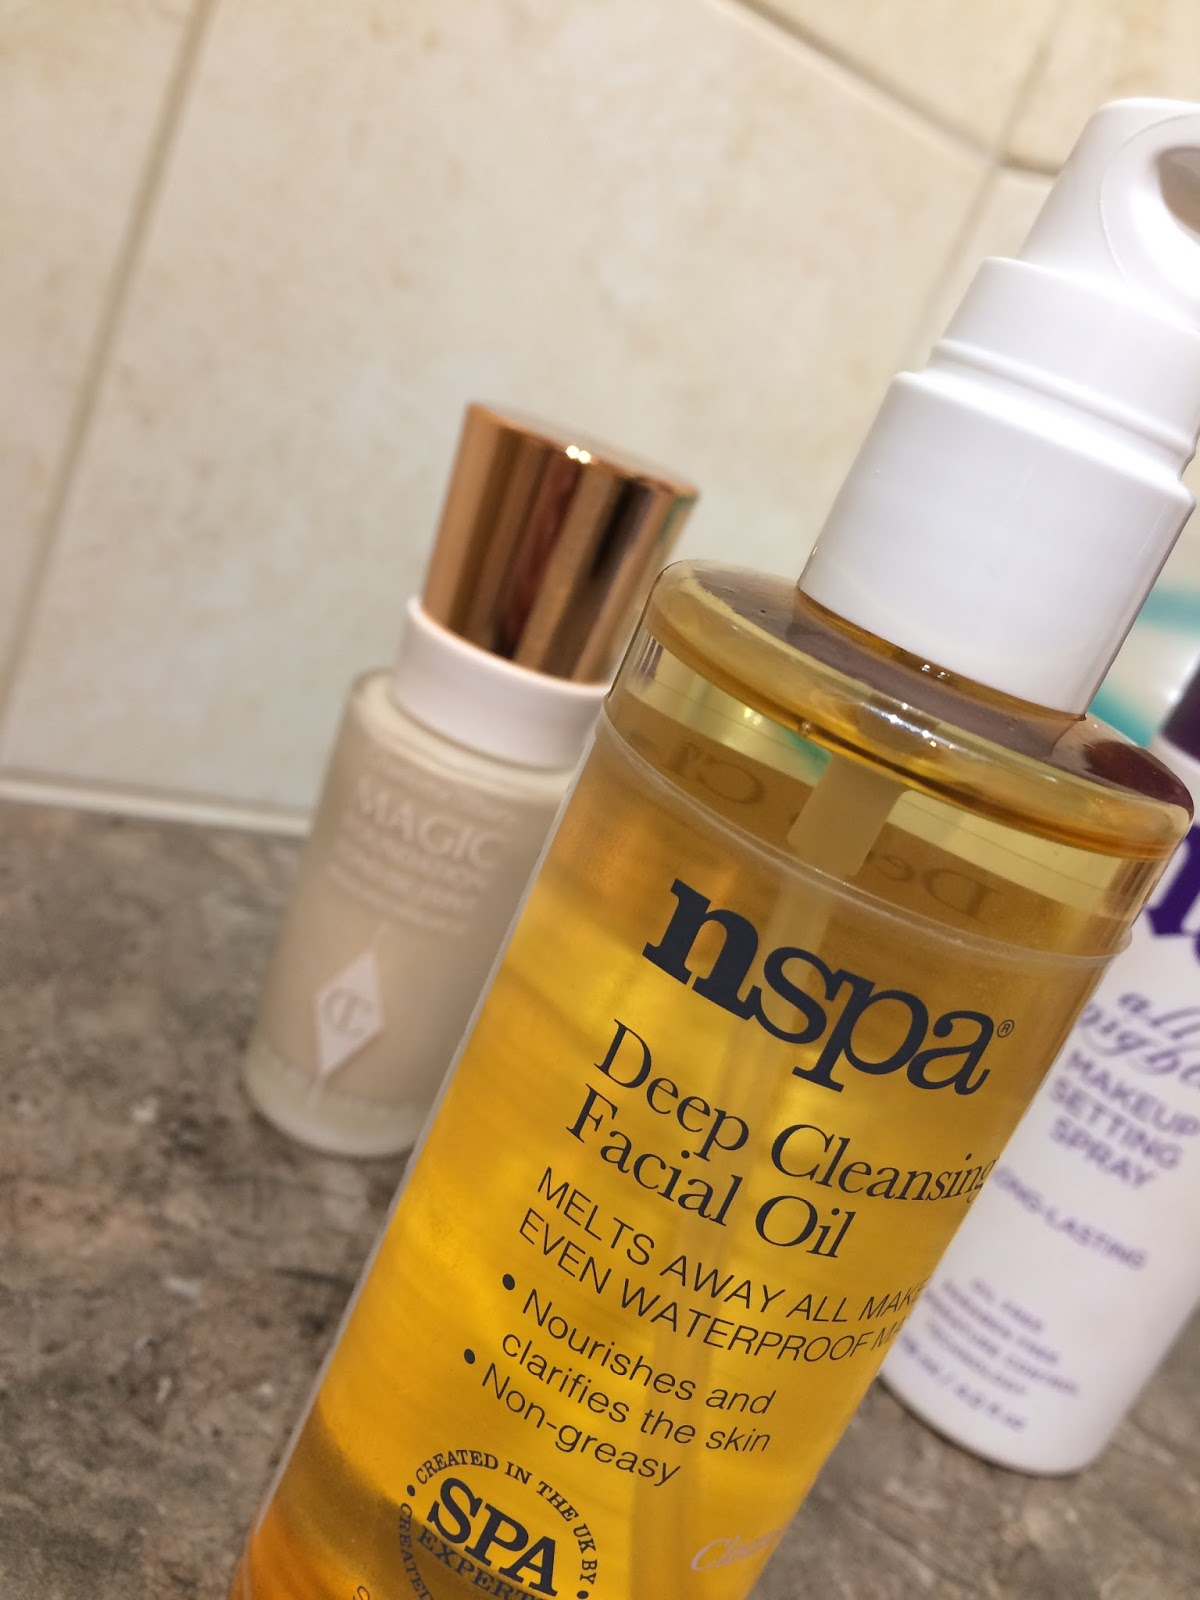 The Lilac Scrapbook: nspa Deep Cleansing Facial Oil // Review